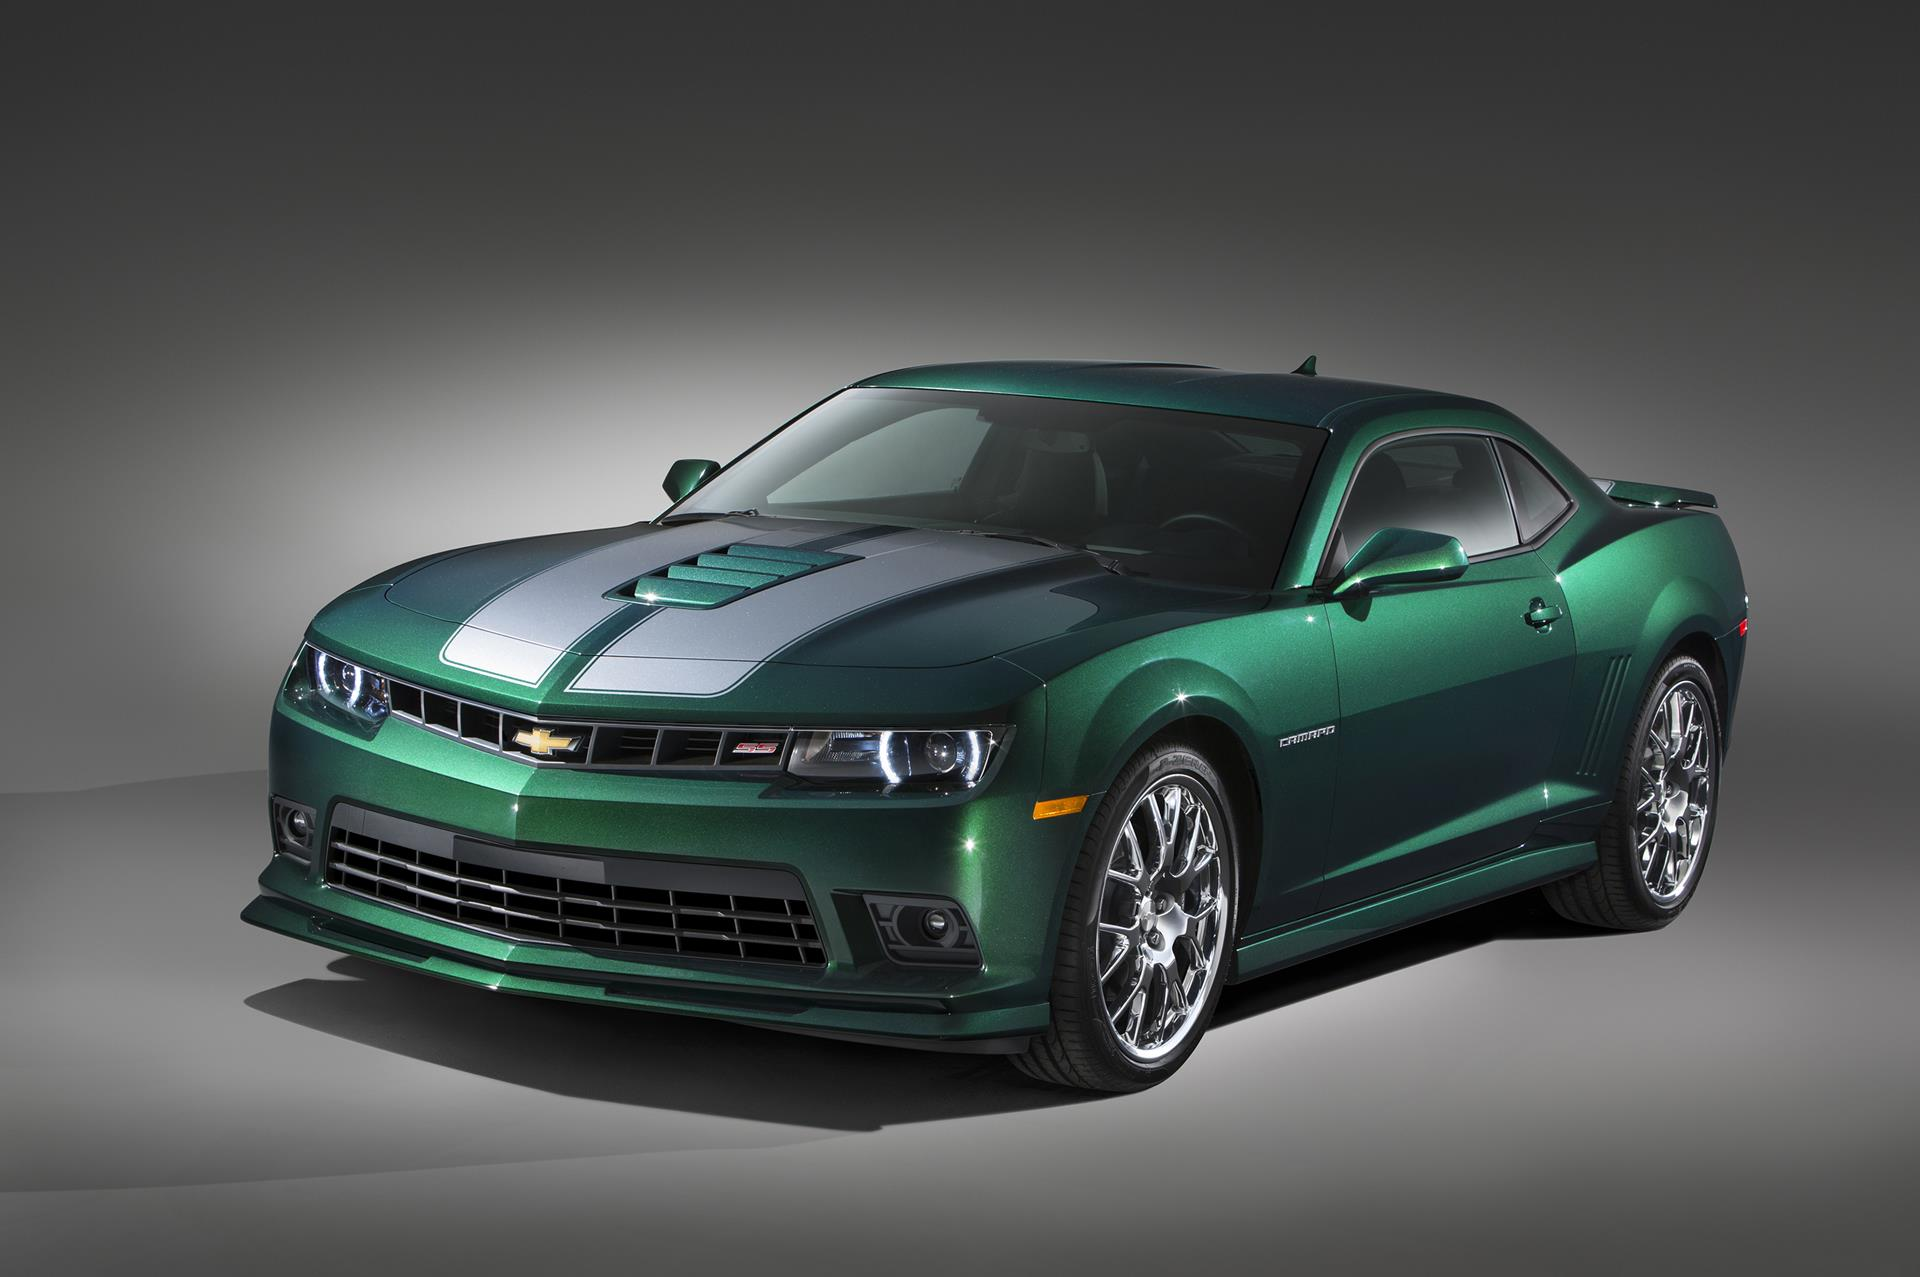 2015 chevrolet camaro ss special edition. Black Bedroom Furniture Sets. Home Design Ideas